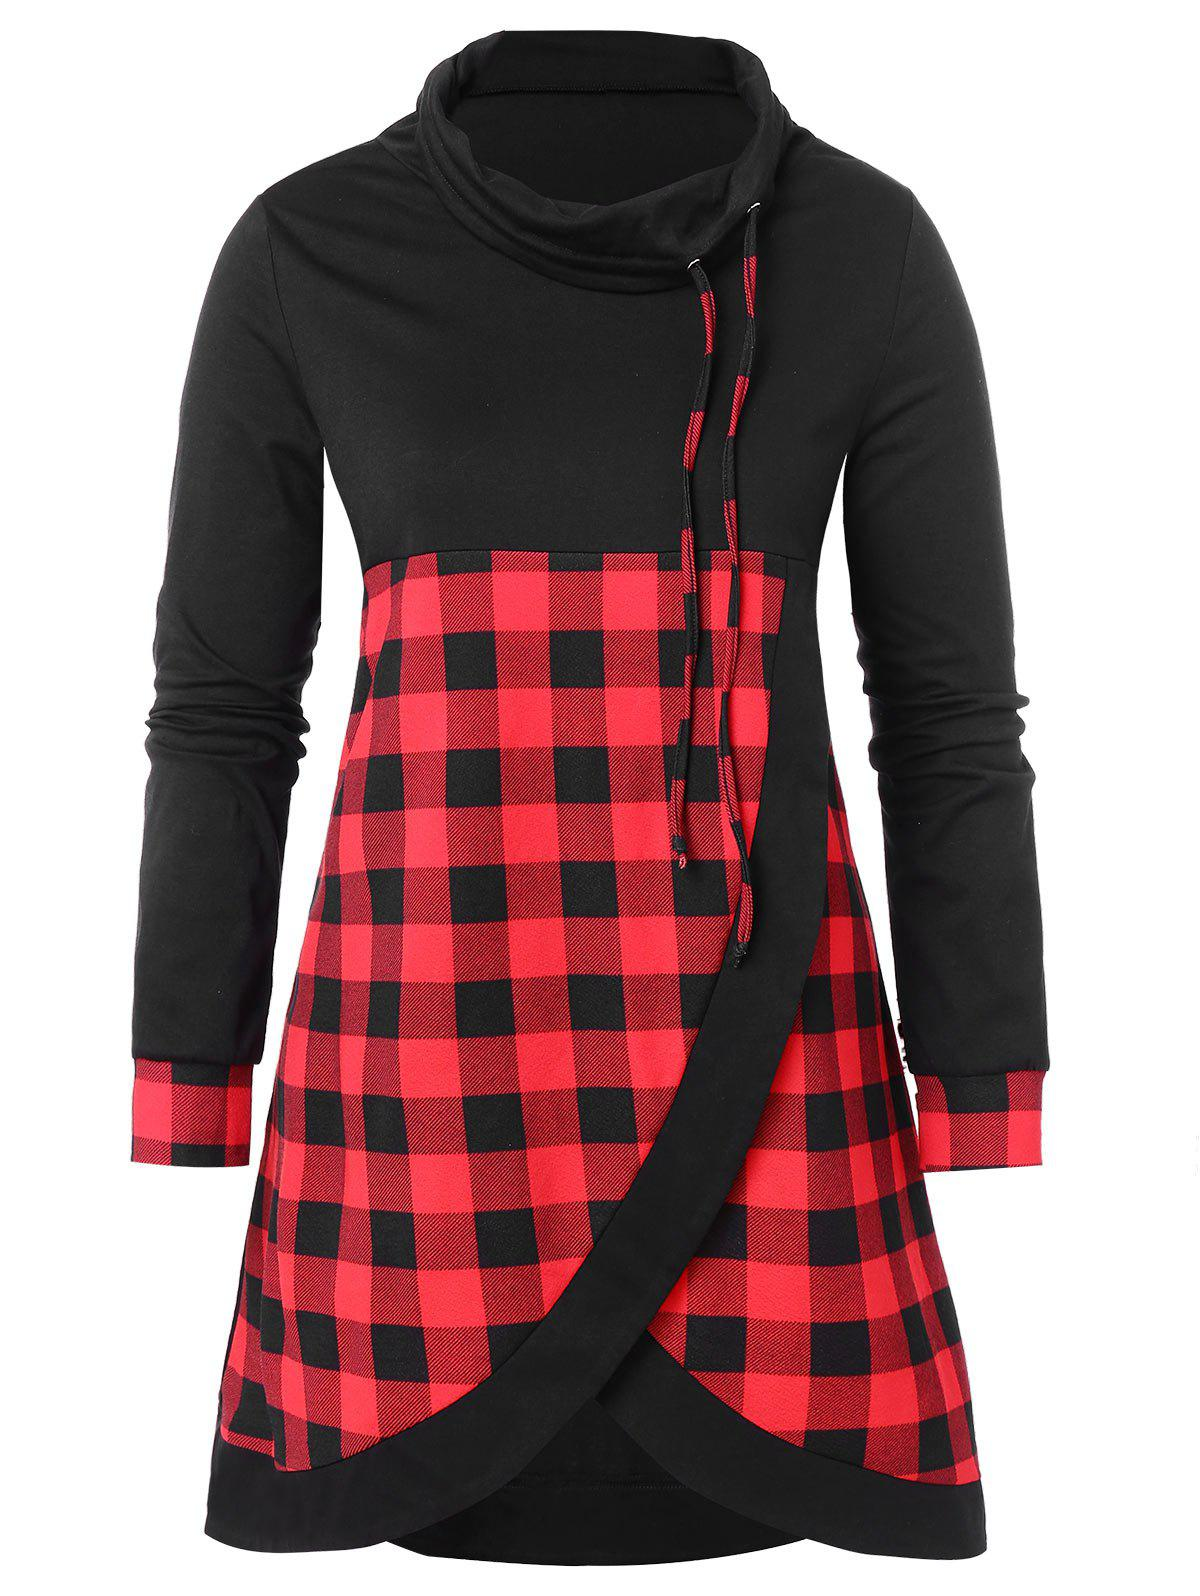 Plus Size Plaid Panel Cowl Neck Sweatshirt - BLACK 2X